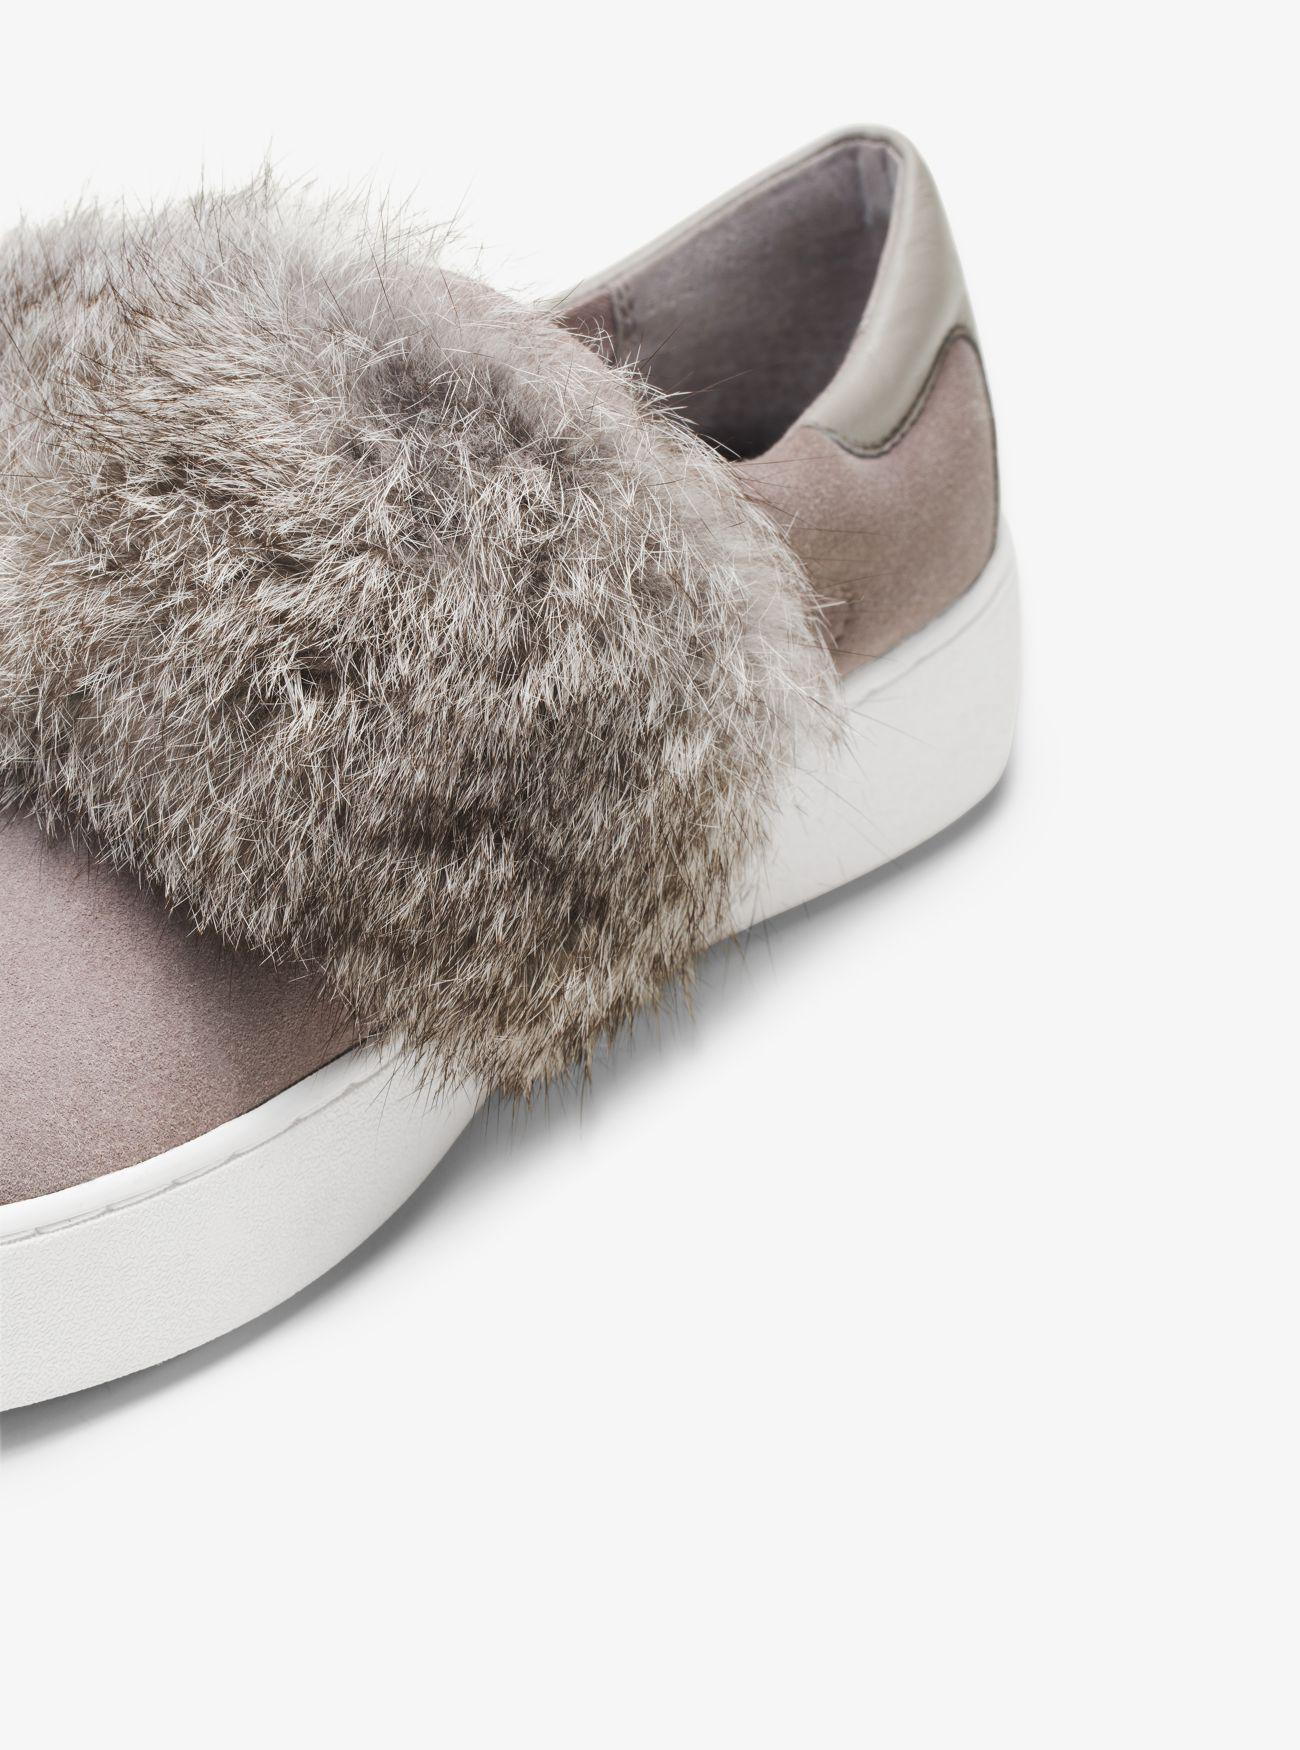 5acb09ff743 Lyst - Michael Kors Maven Fur And Suede Slip-on Sneaker in Gray